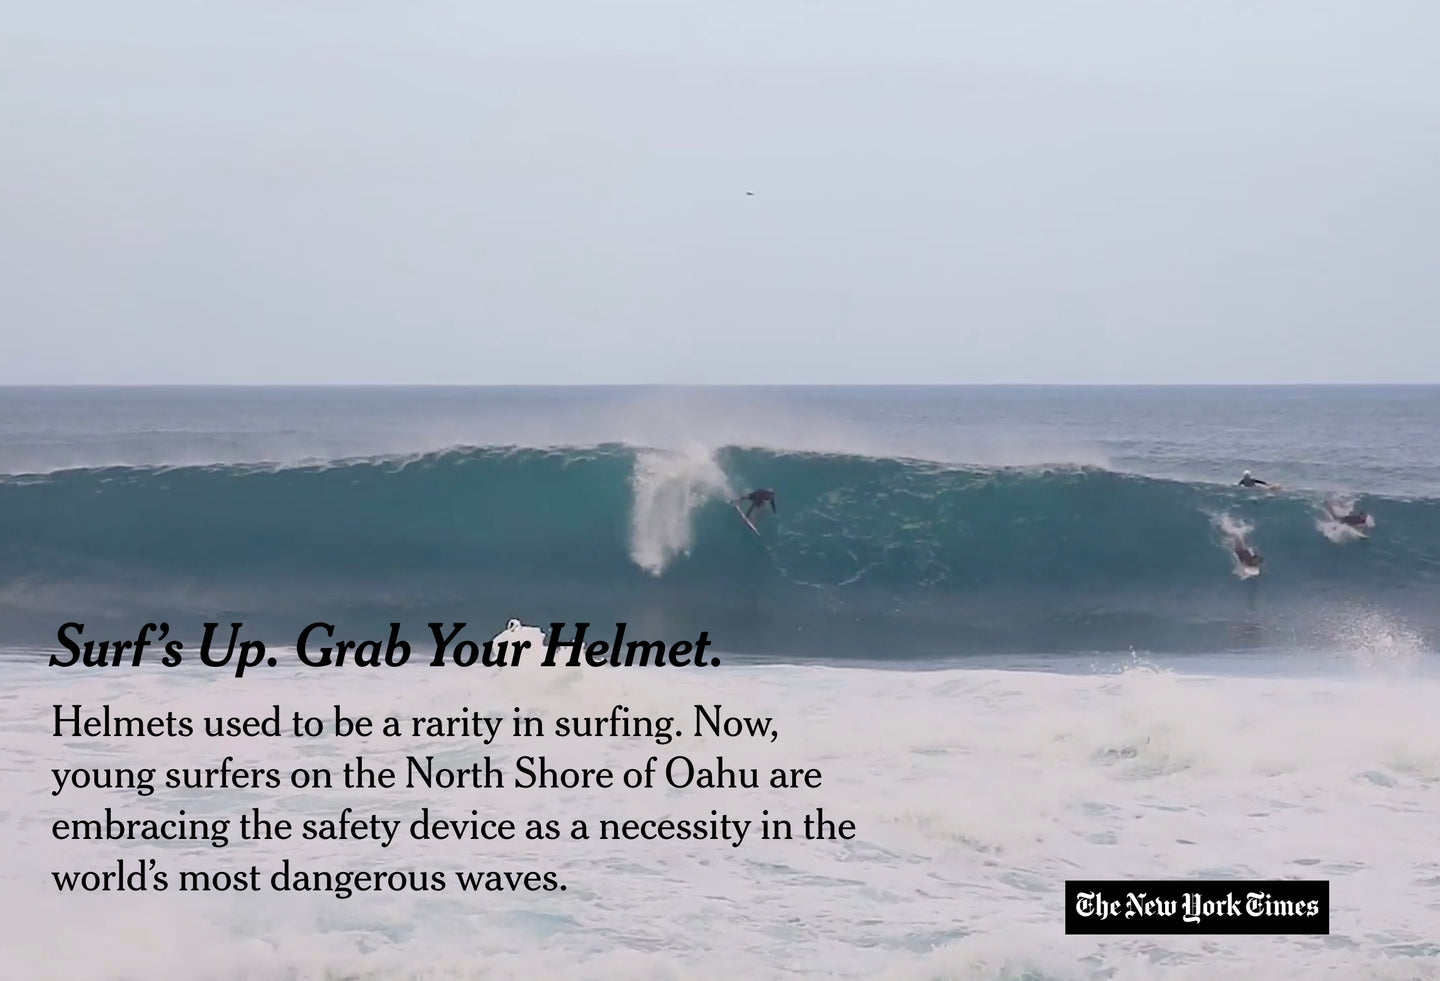 Surf's Up. Grab Your Helmet.